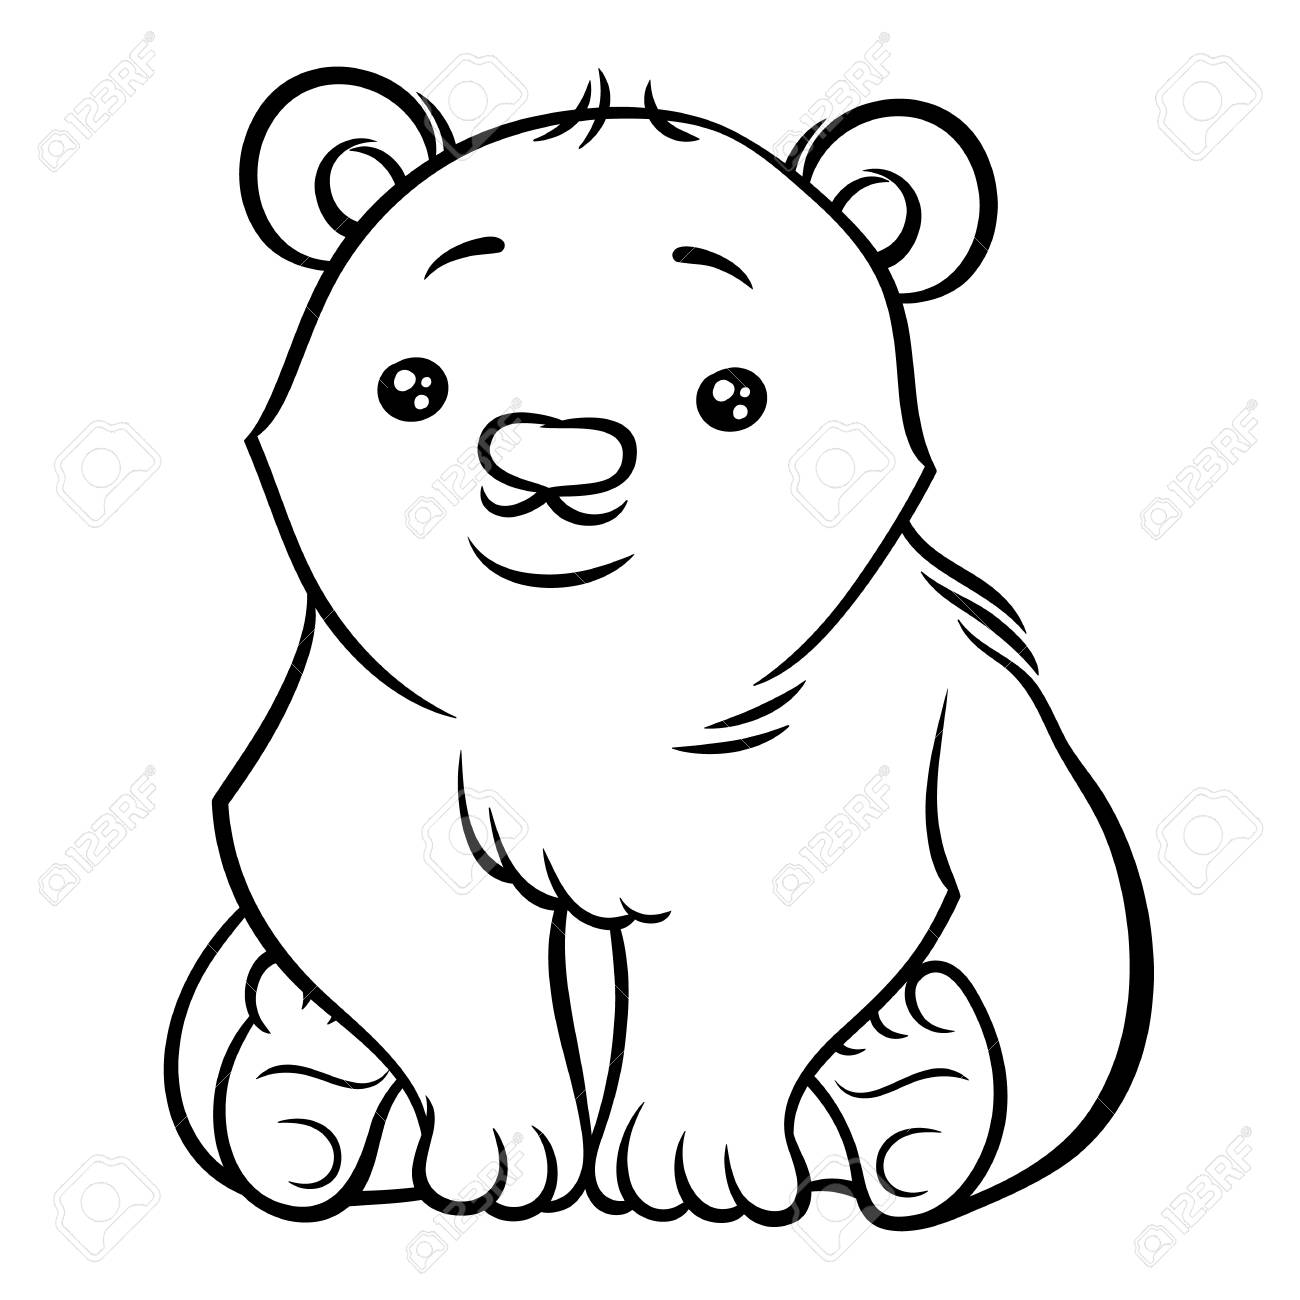 1300x1300 Illustration Of Cute Cartoon Baby Polar Bear Royalty Free Cliparts